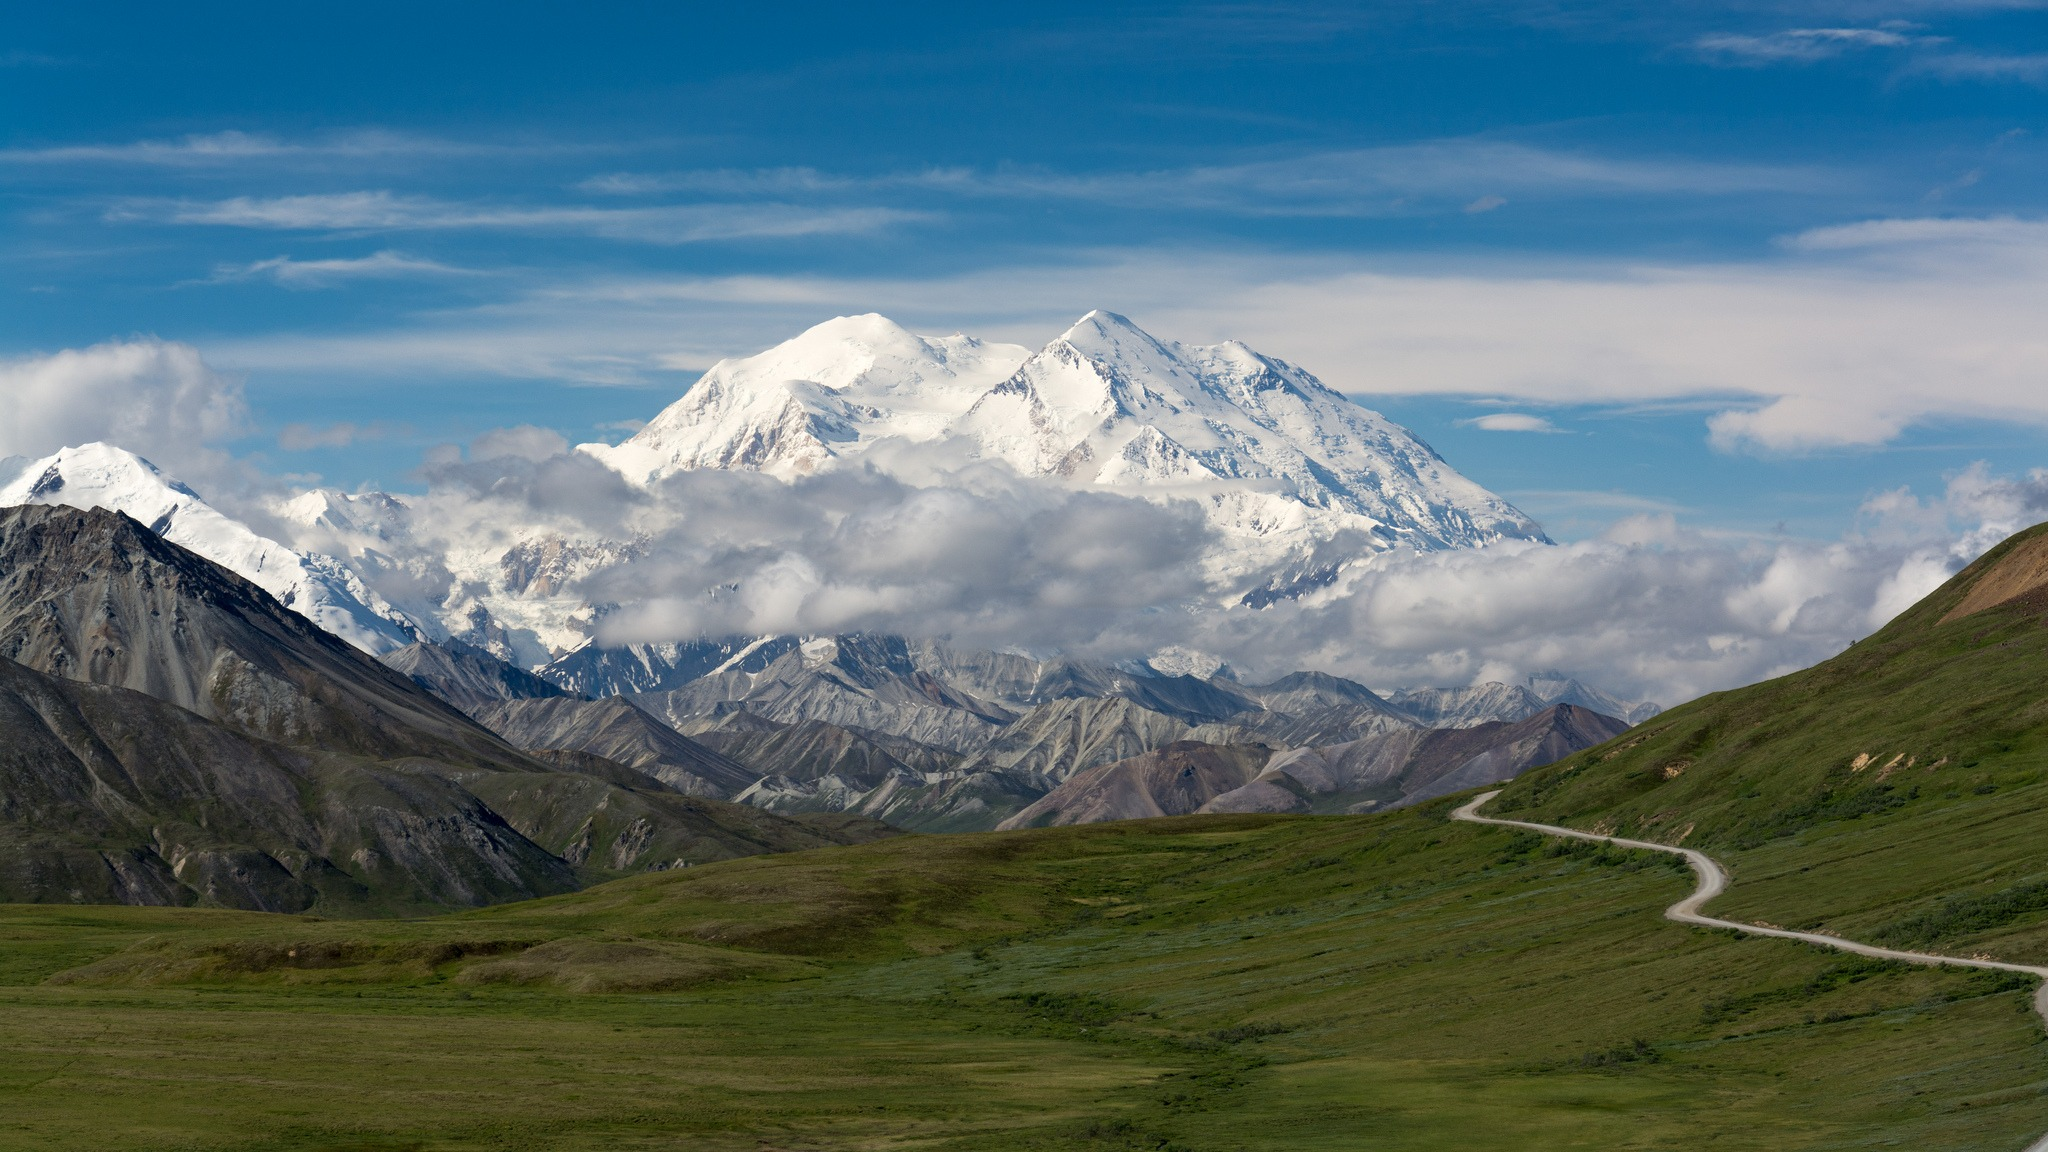 denali_Christoph Strässler_flickr